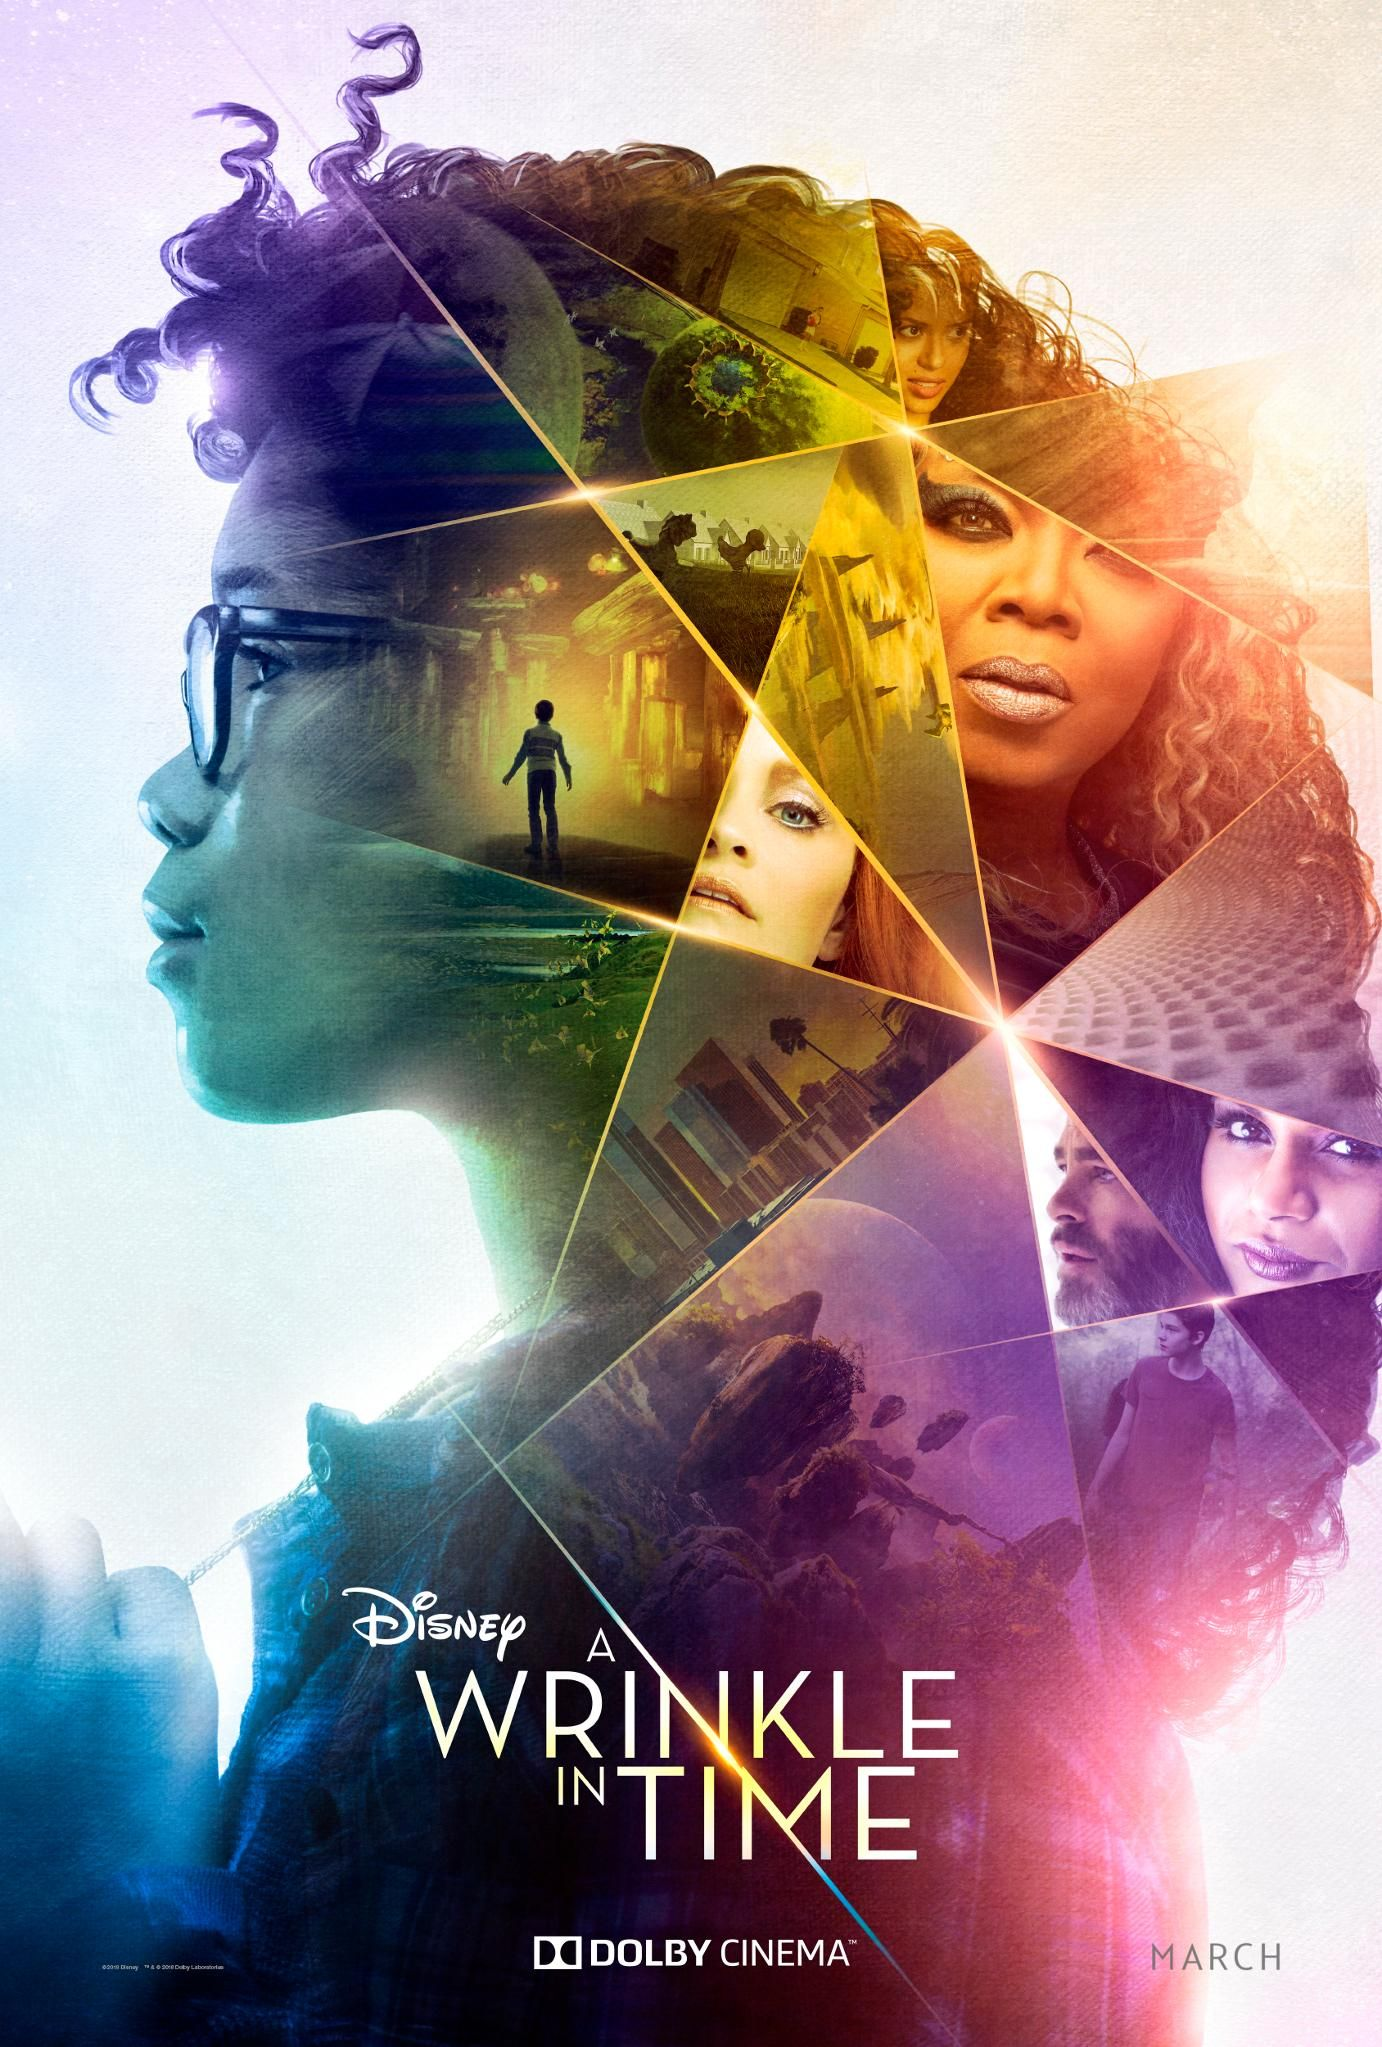 A Wrinkle In Time A Wrinkle In Time Cinema Posters Movies Online